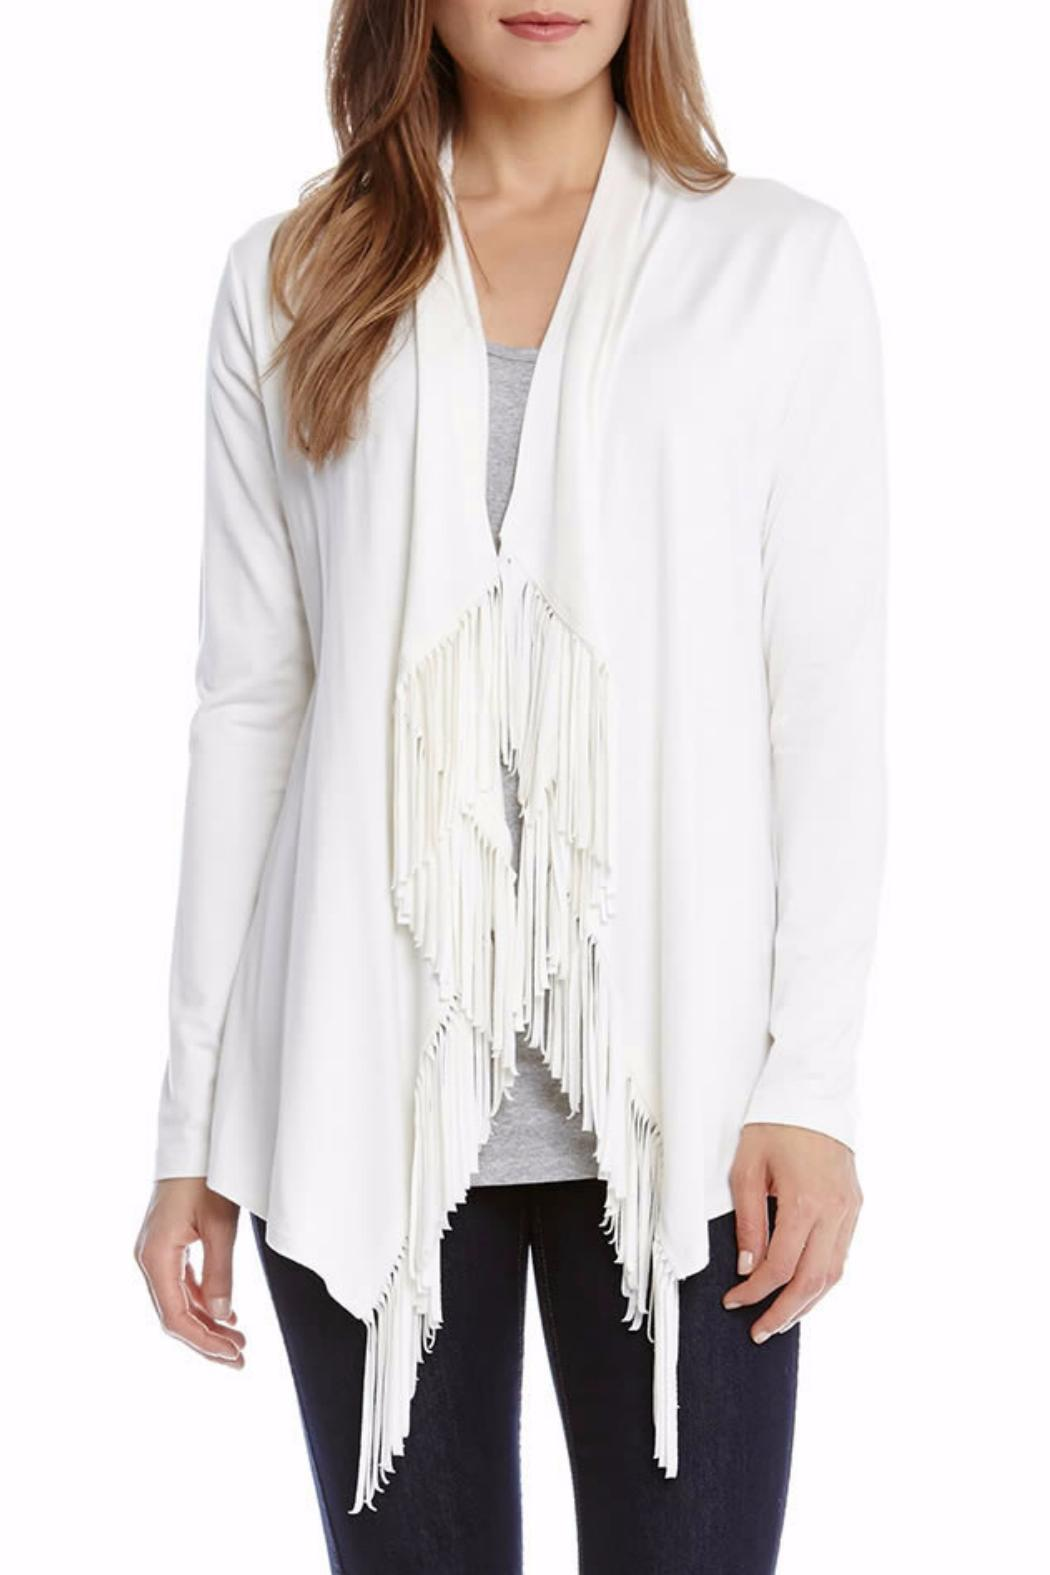 Karen Kane Off-White Fringe Cardigan - Front Cropped Image - Karen Kane Off-White Fringe Cardigan From Texas By Le Marche